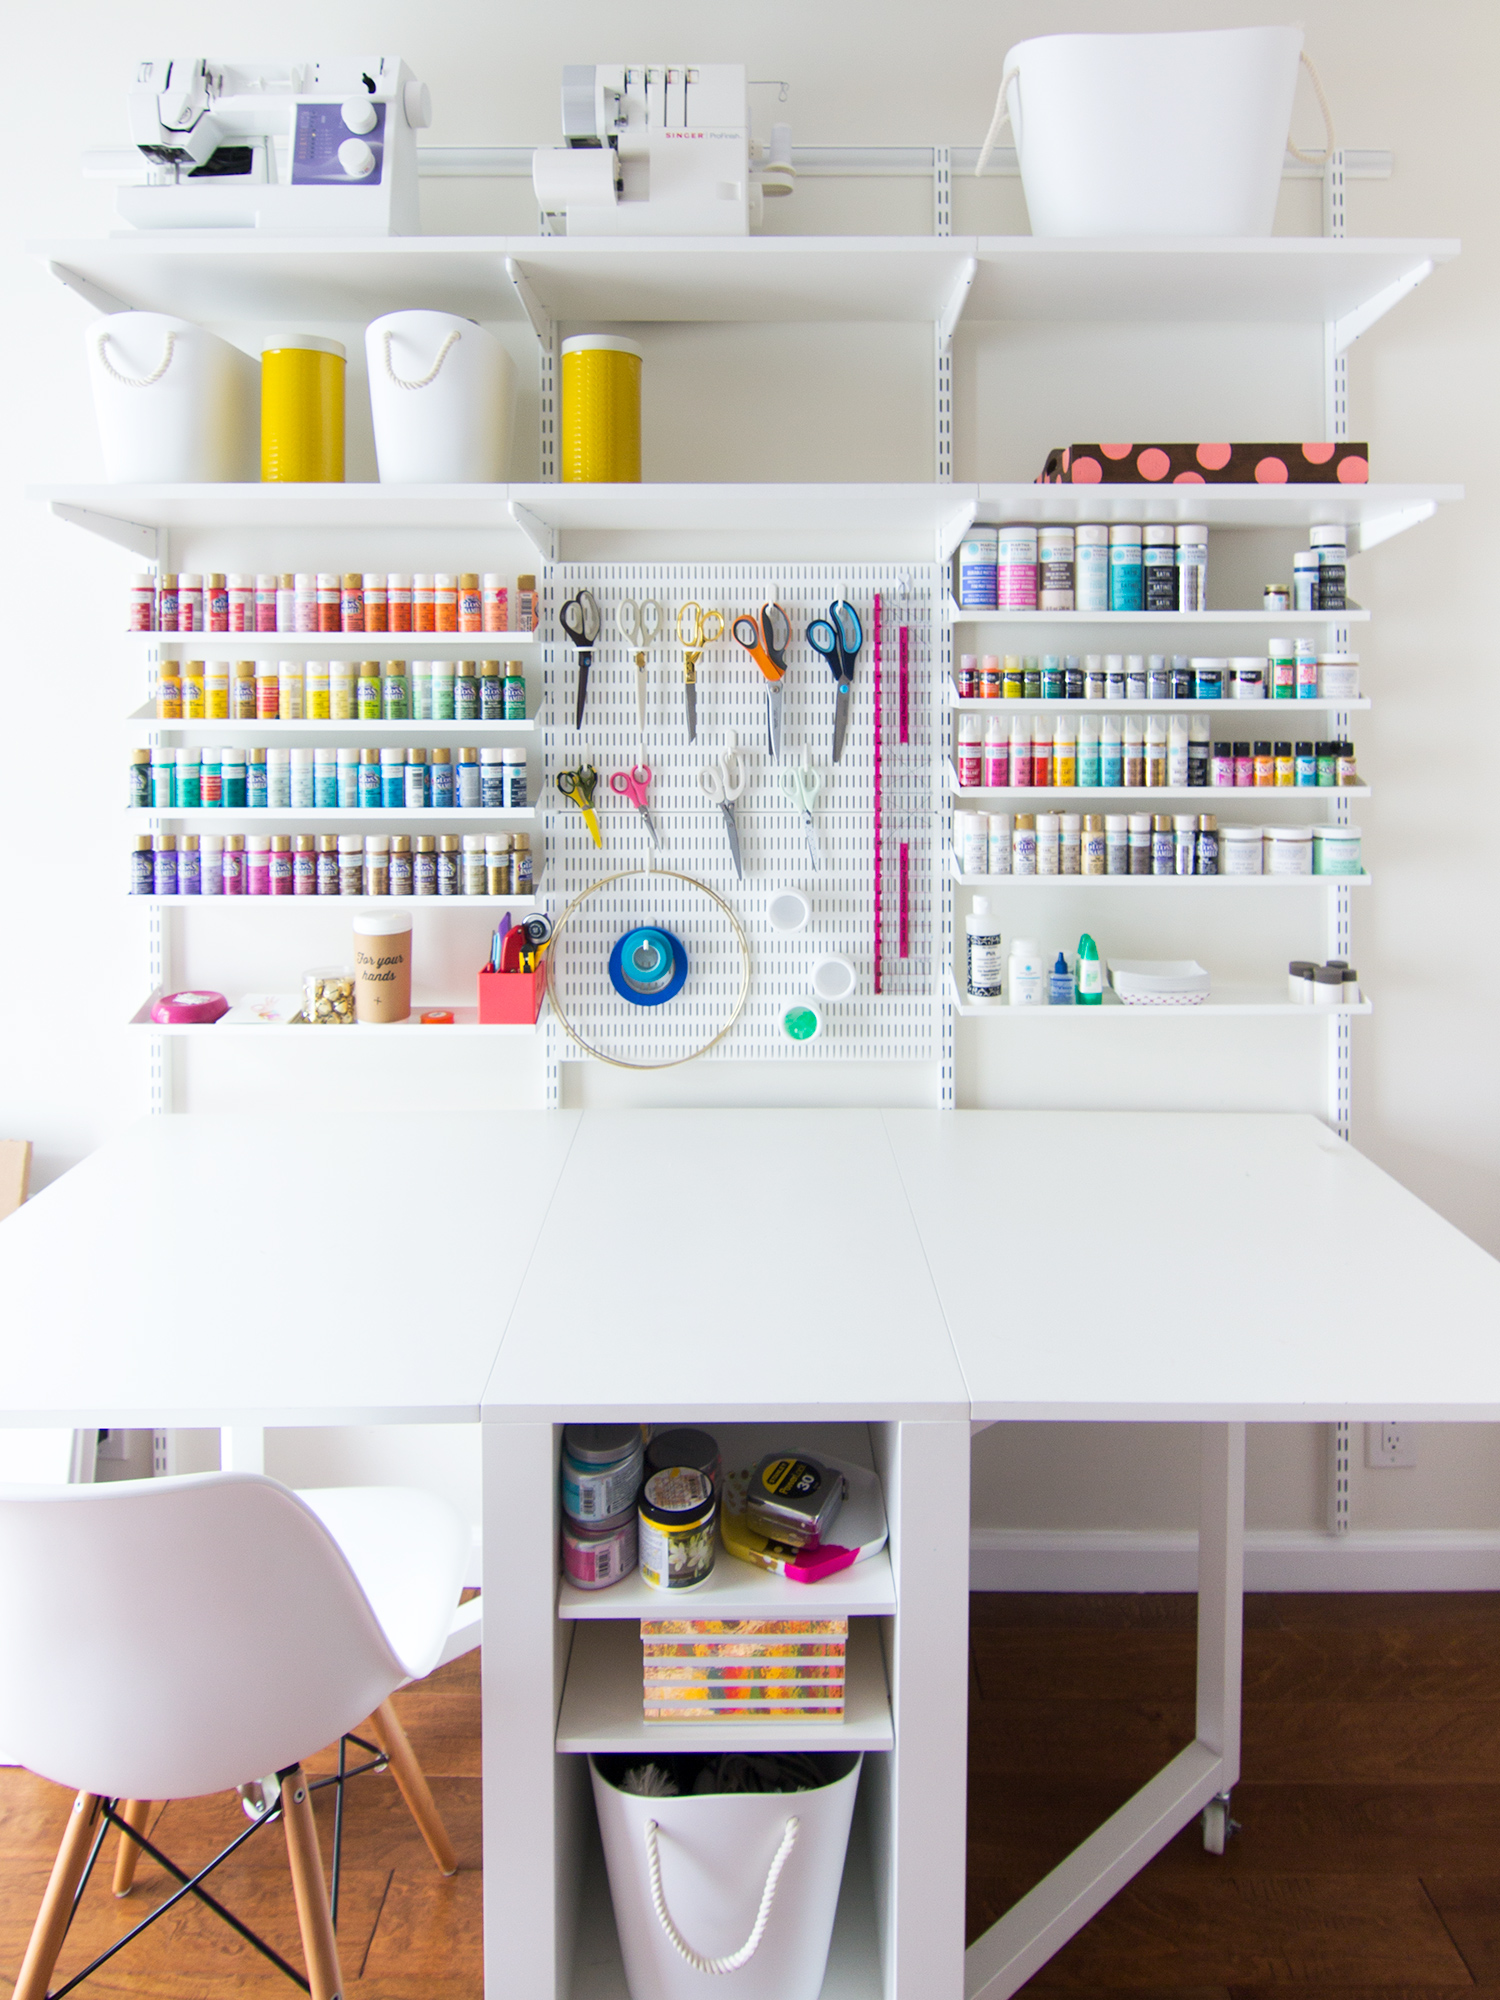 A place for everything in this organized home office and craft room!